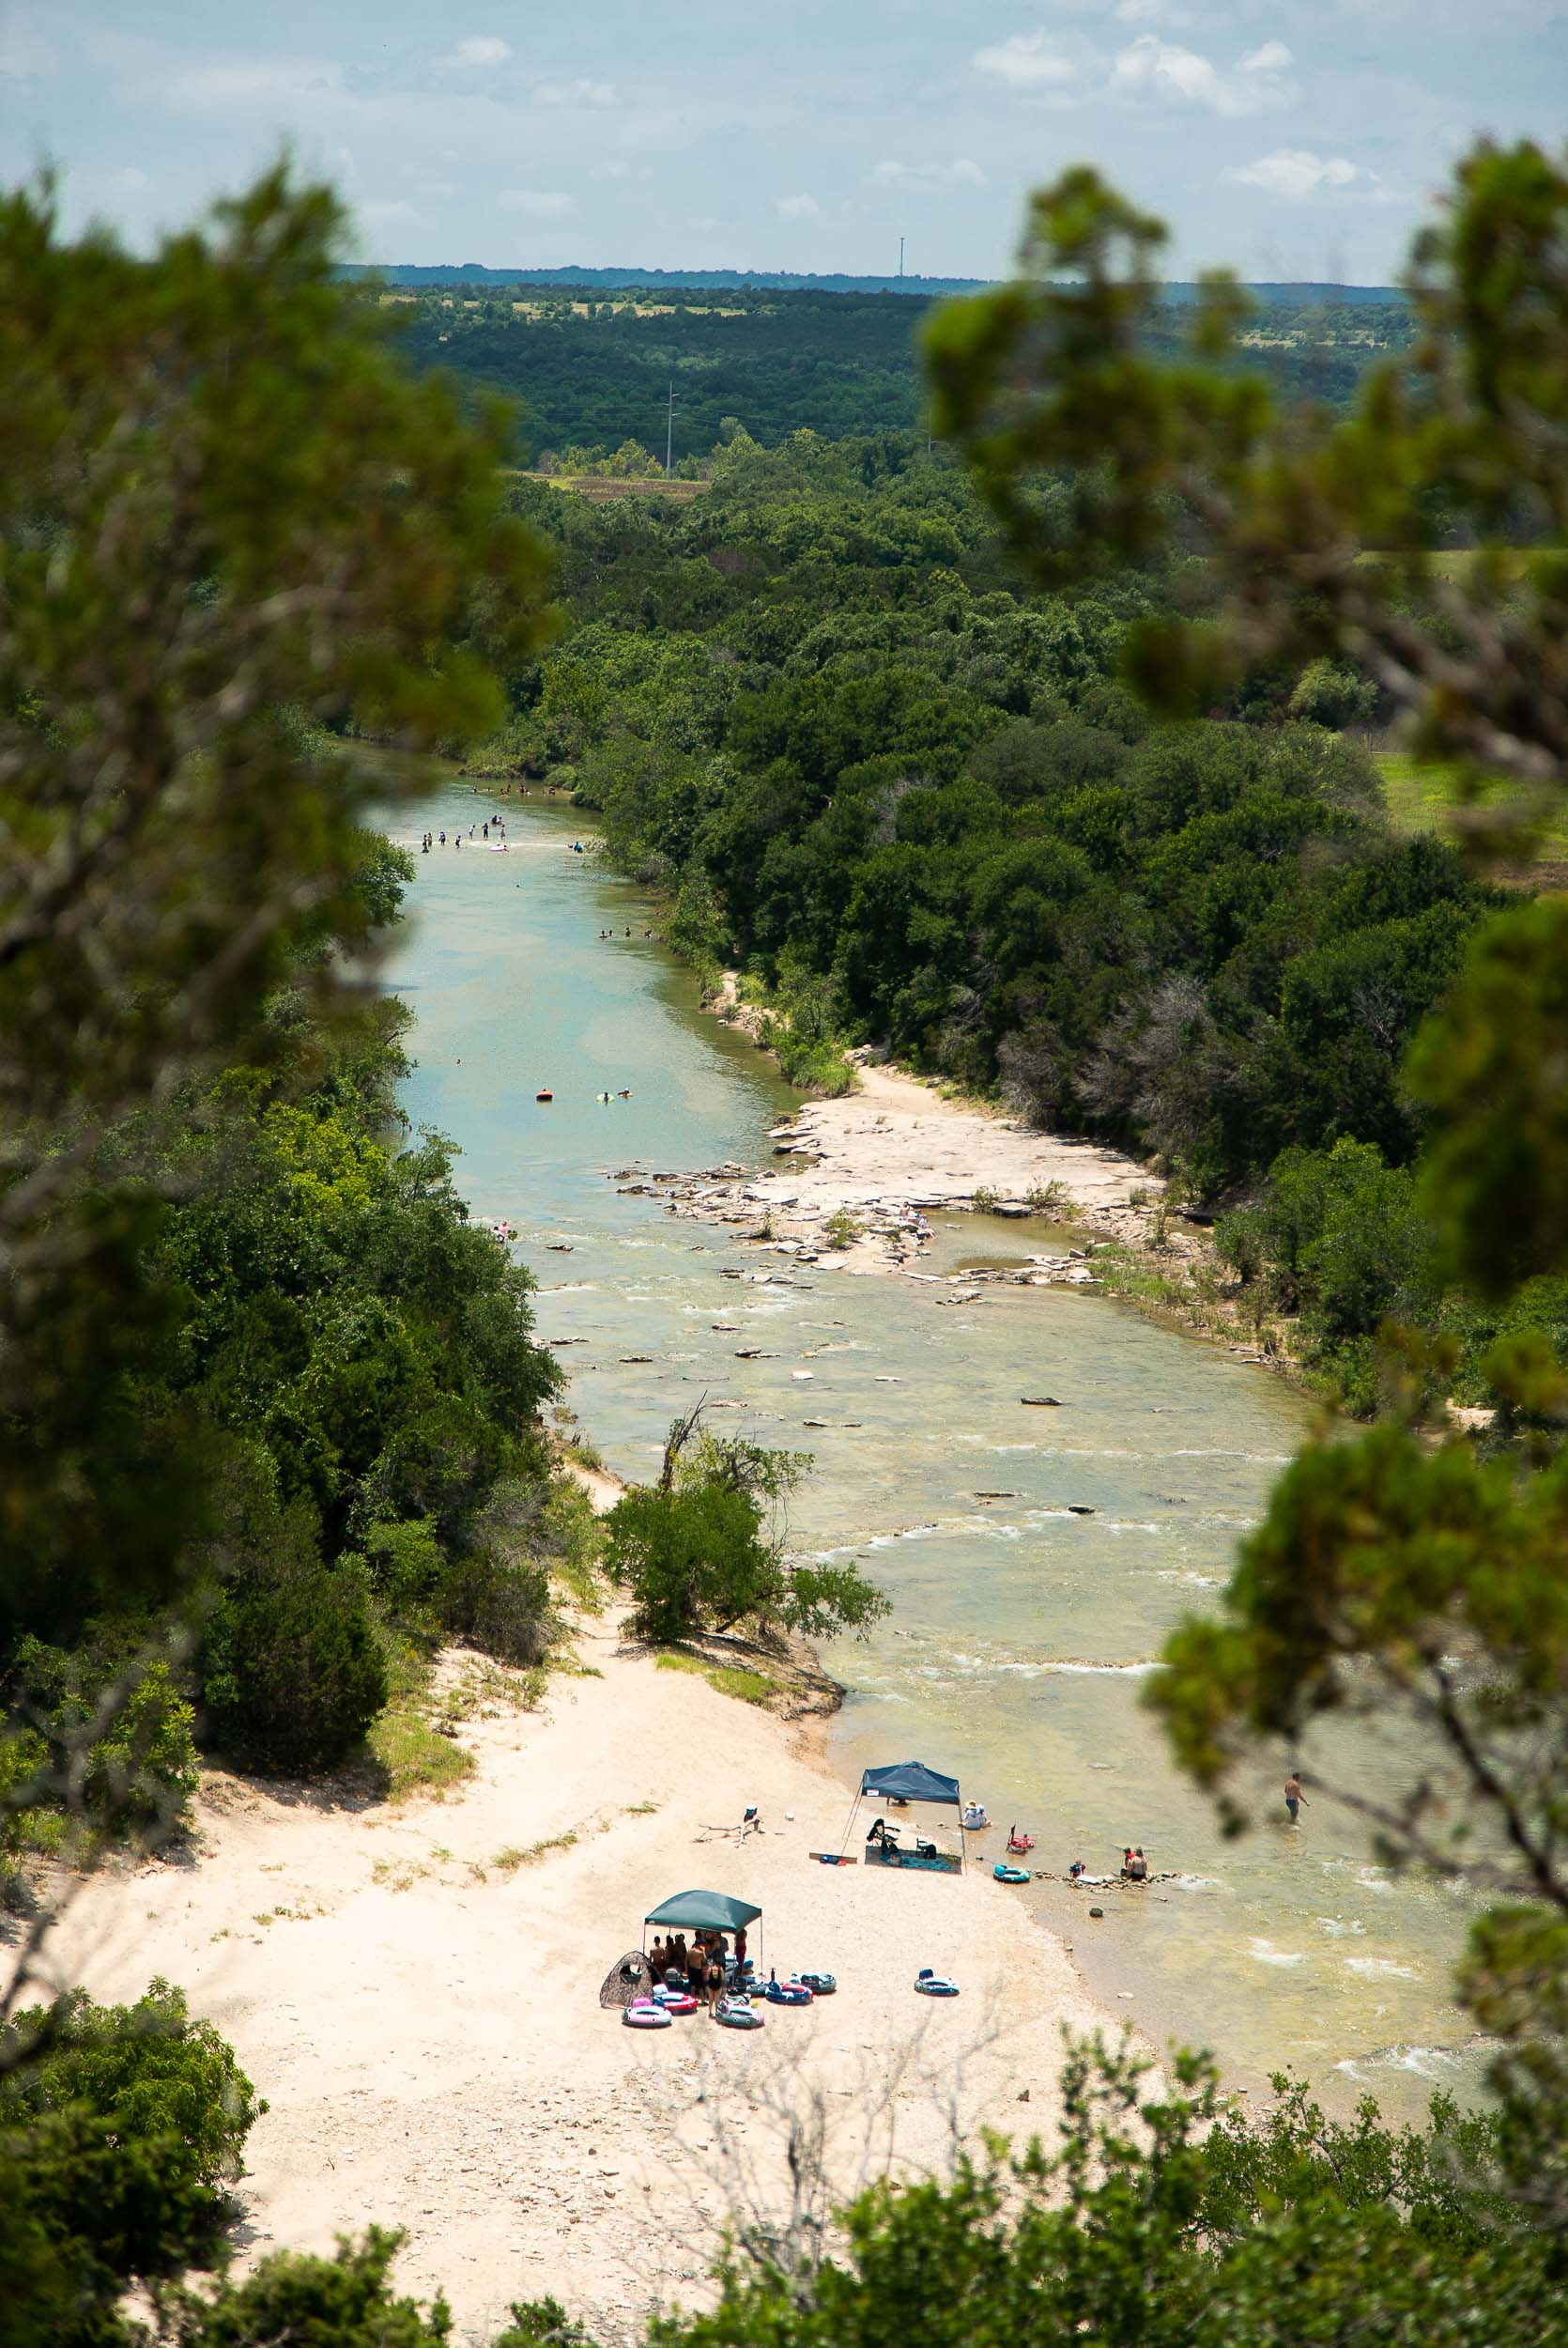 Bird's-eye view of the Paluxy River from the Overlook Trail at Dinosaur Valley State Park in Glen Rose, Texas by  Cameron Mosier .